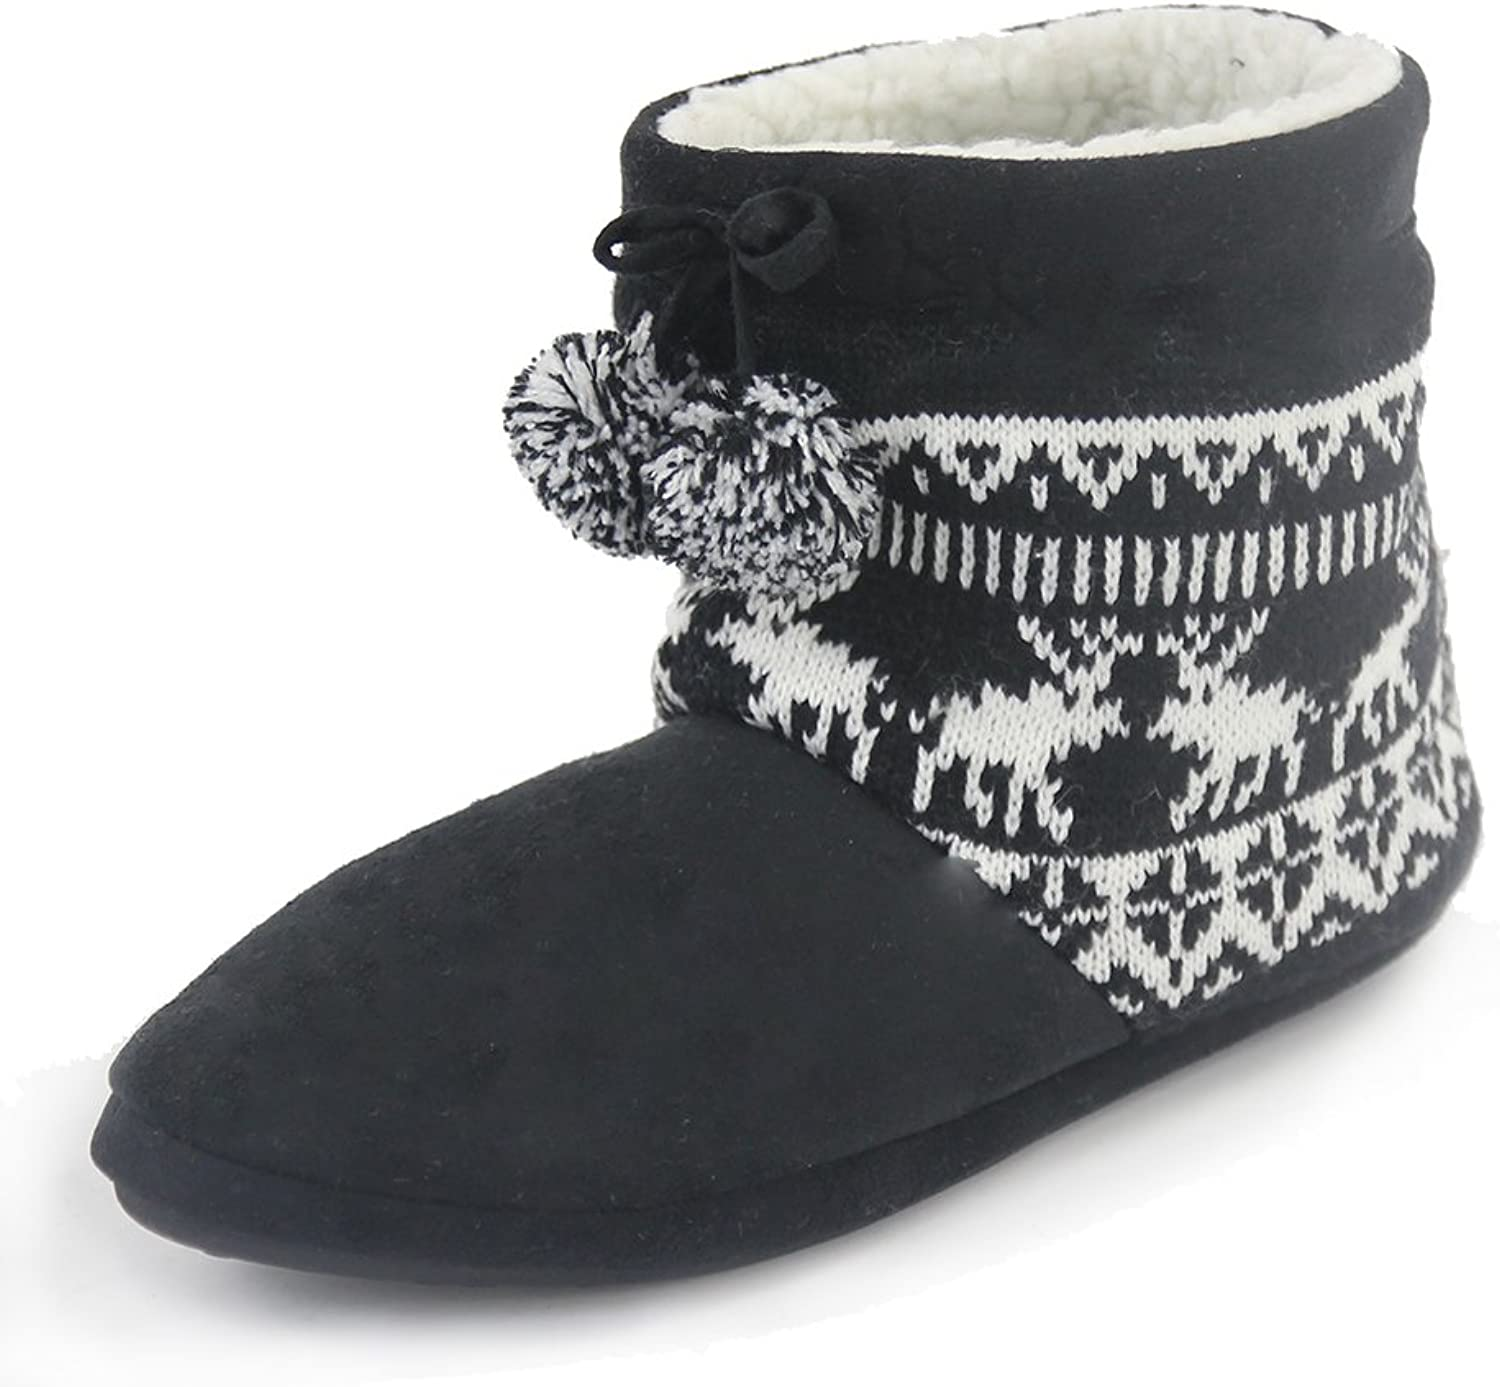 Gohom Fuzzy House Slipper for Women, Indoor Faux Fur Slip on Home shoes Boots